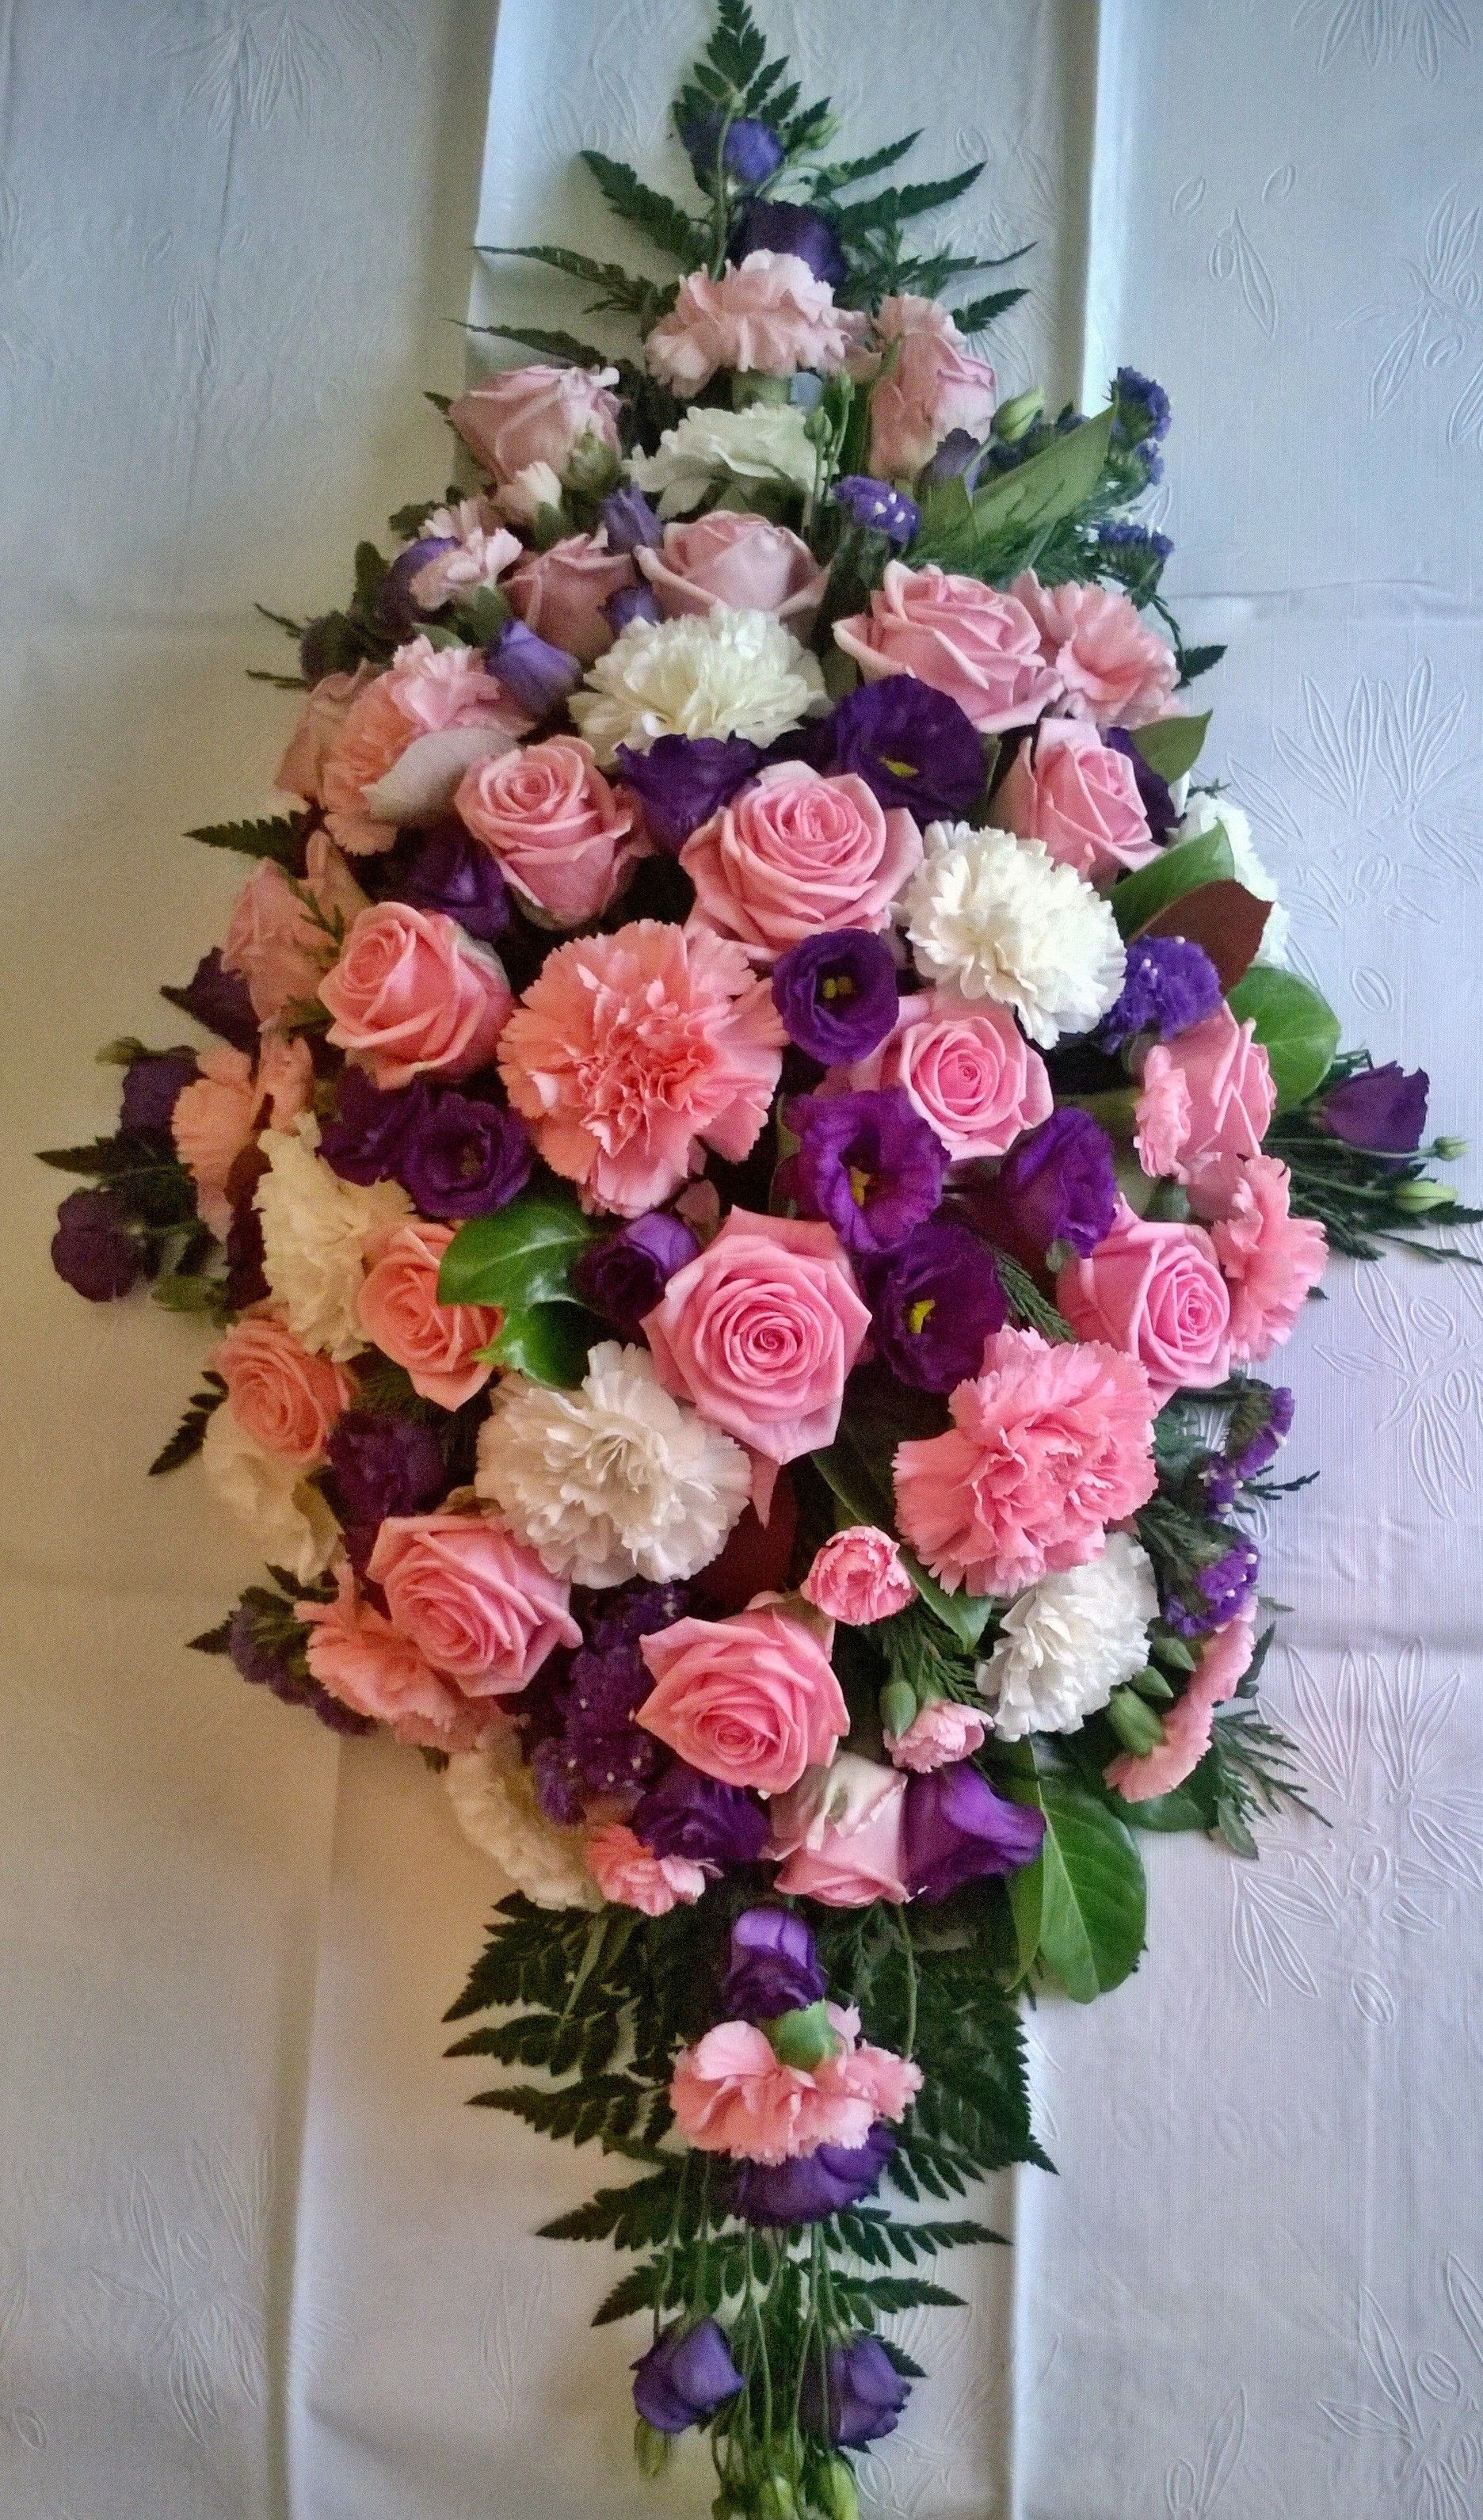 Send Funeral Flowers Best Of Pink and White Roses and Carnations Purple Lisianthus Coffin Funeral